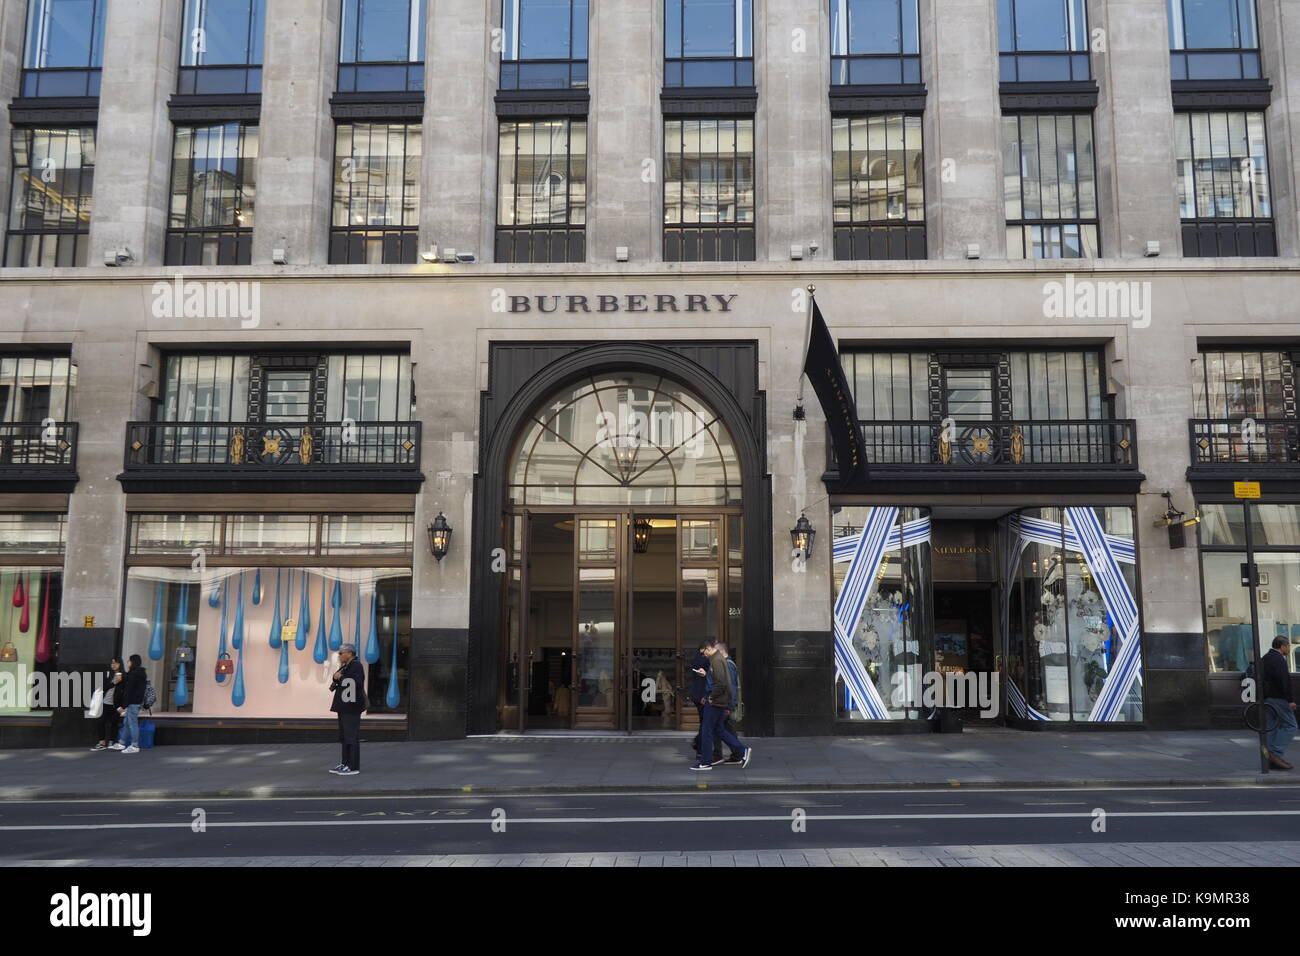 Burberry Flagship store Regent Street London - Stock Image